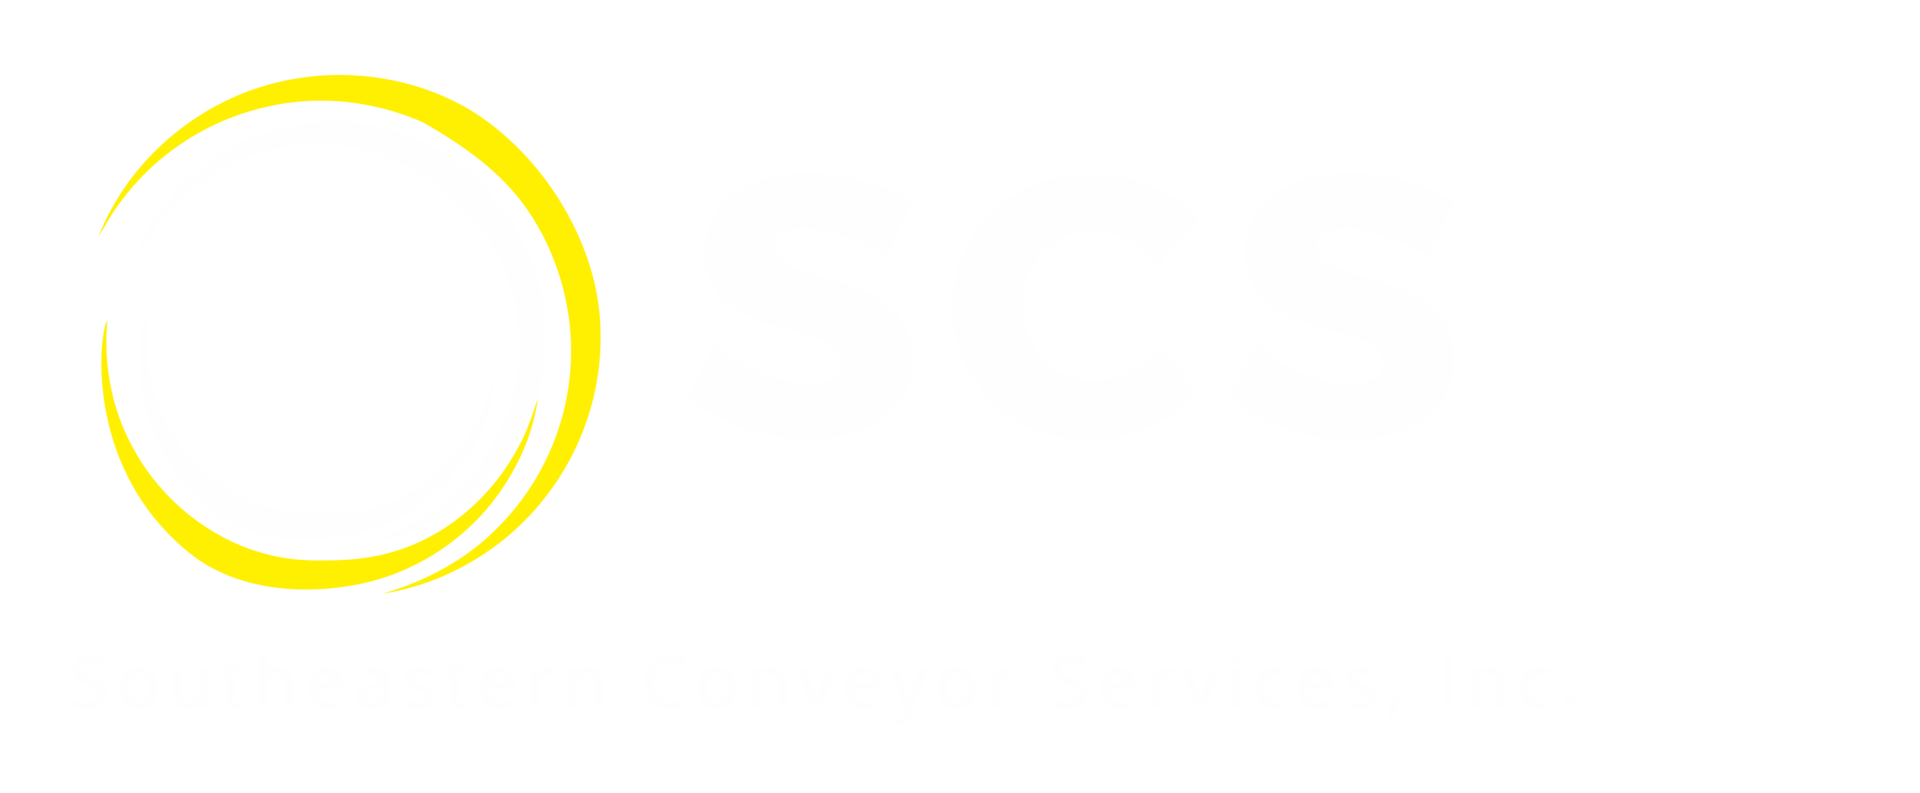 Southeastern Conveyor Services Inc